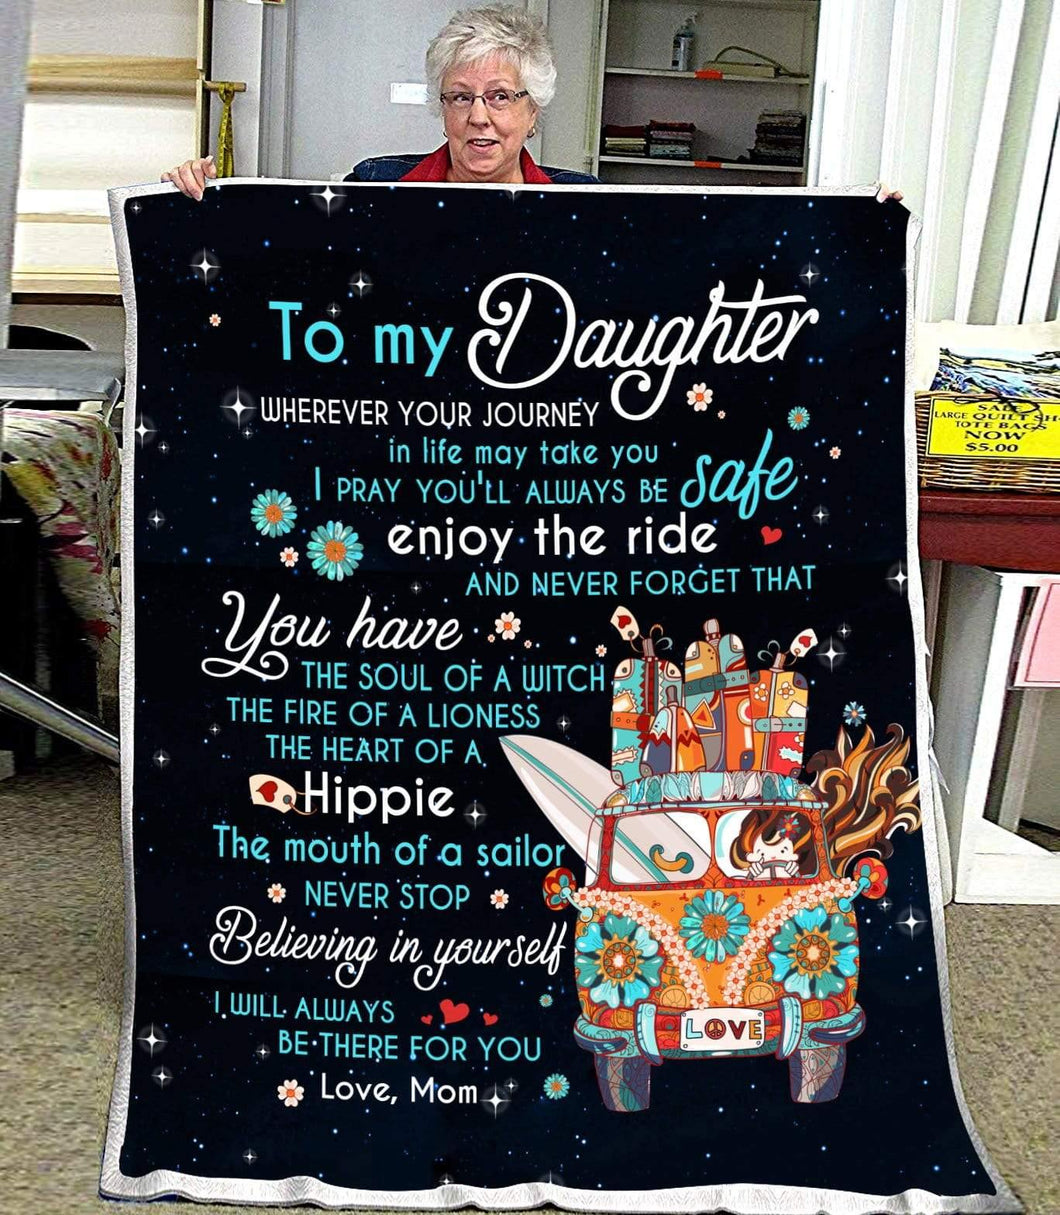 BLANKET - HIPPIE - Daughter (Mom) - Wherever your journey in life may take you